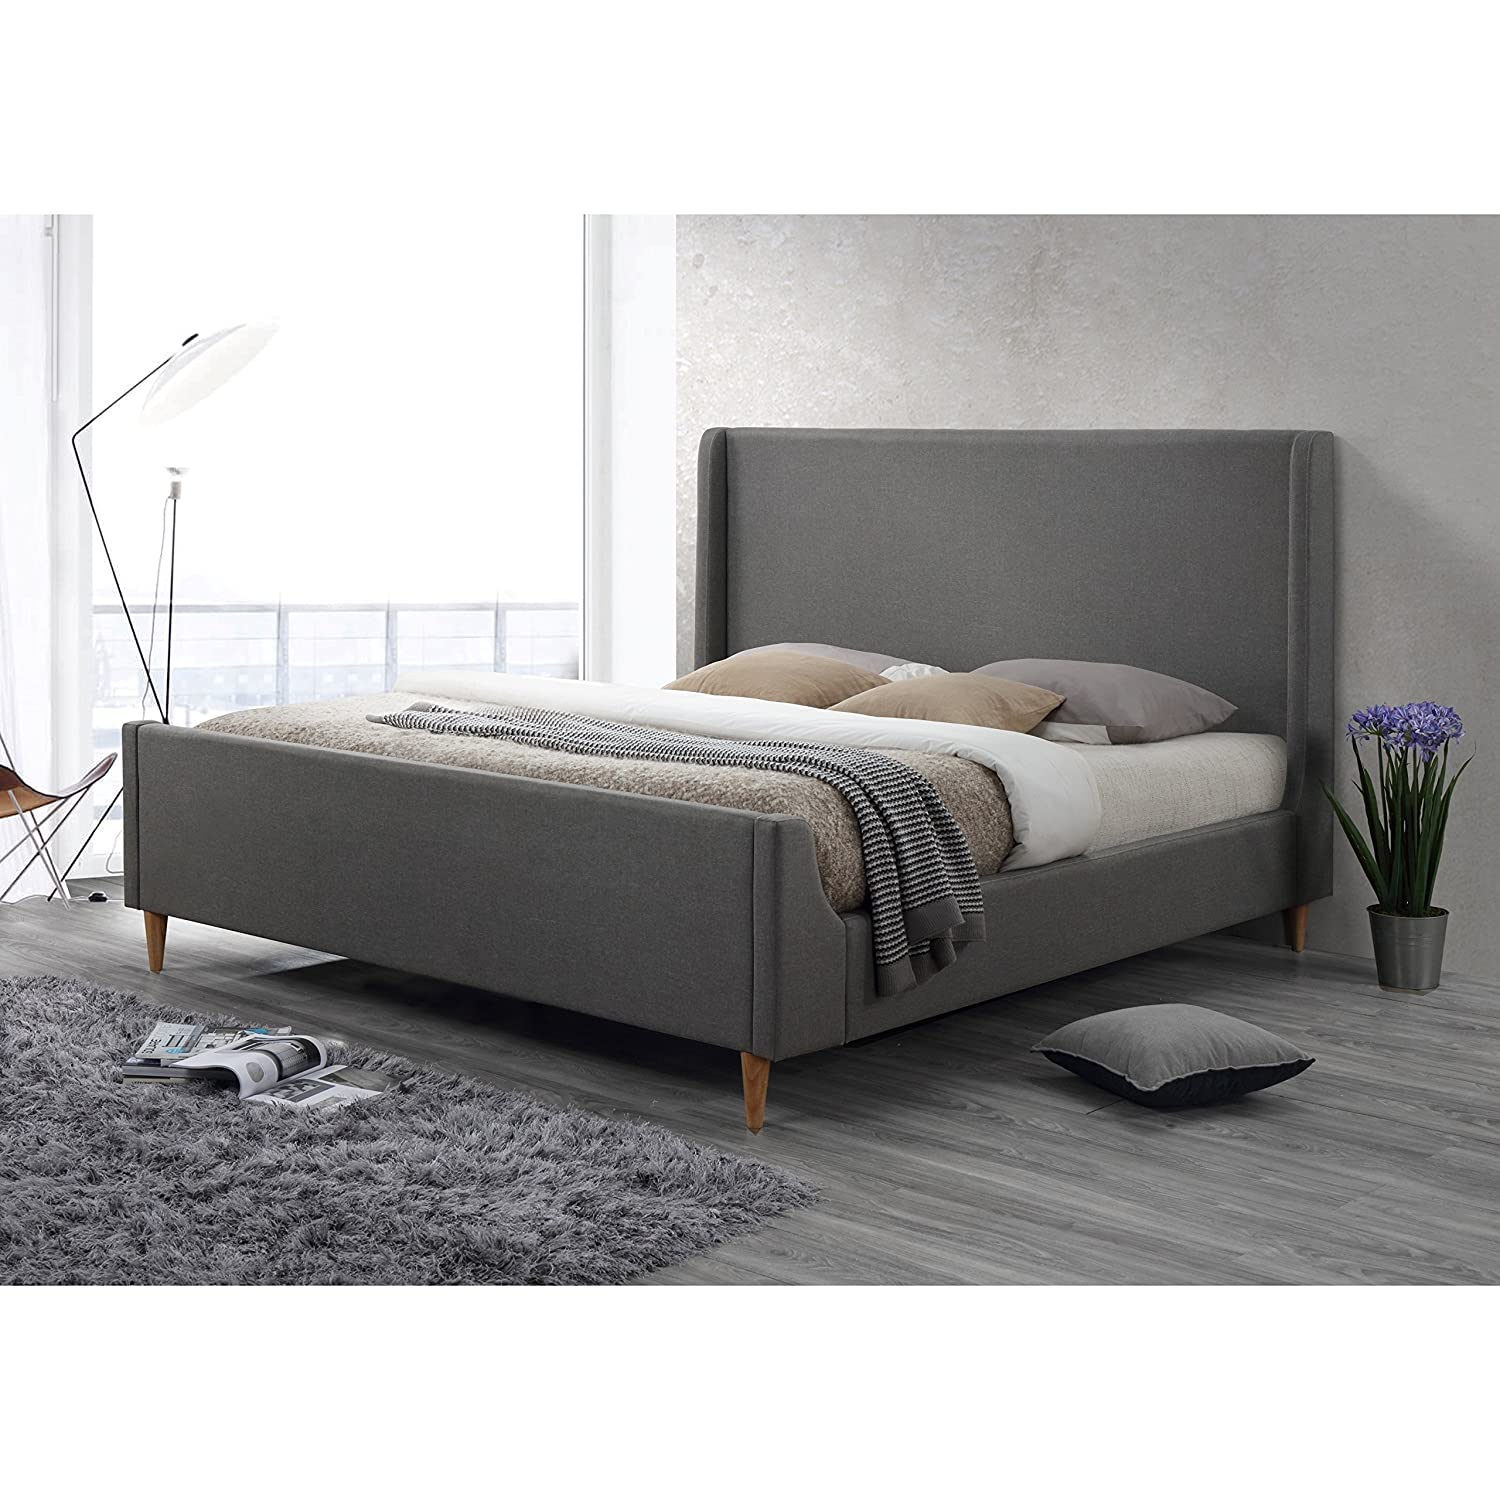 LuXeo LUX-K8816-GRY Bedford Upholstered Platform Bed, King, Linen Gray